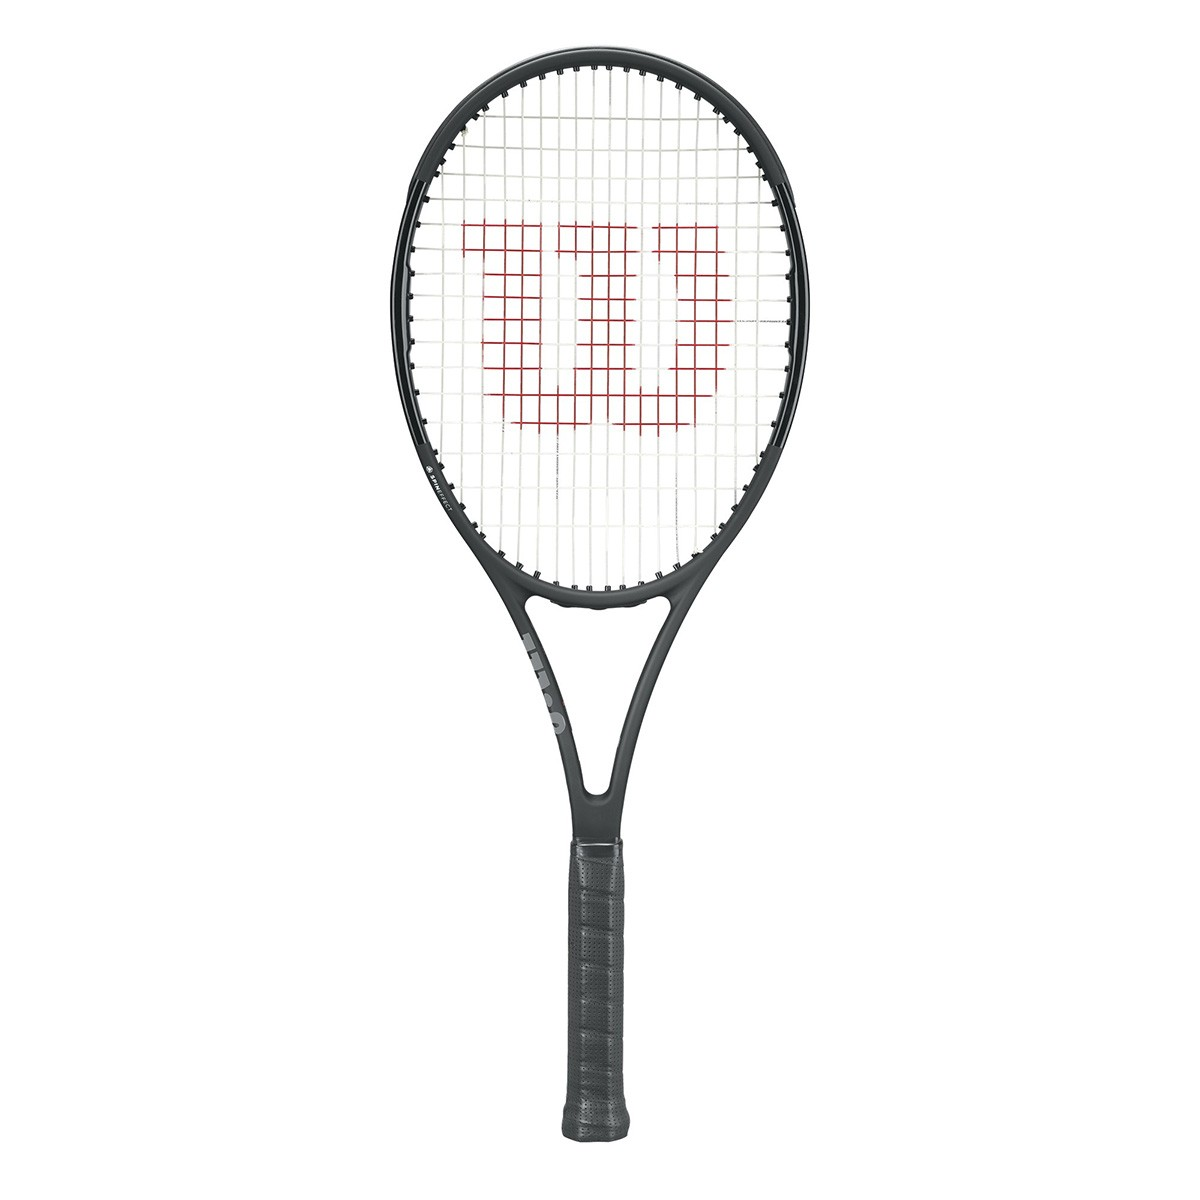 Wilson Pro Staff 97 CV Black Tennis Racquet The Babolat Pure Drive 23  Junior features fused graphite construction in a lighter, more maneuverable  racquet, ...